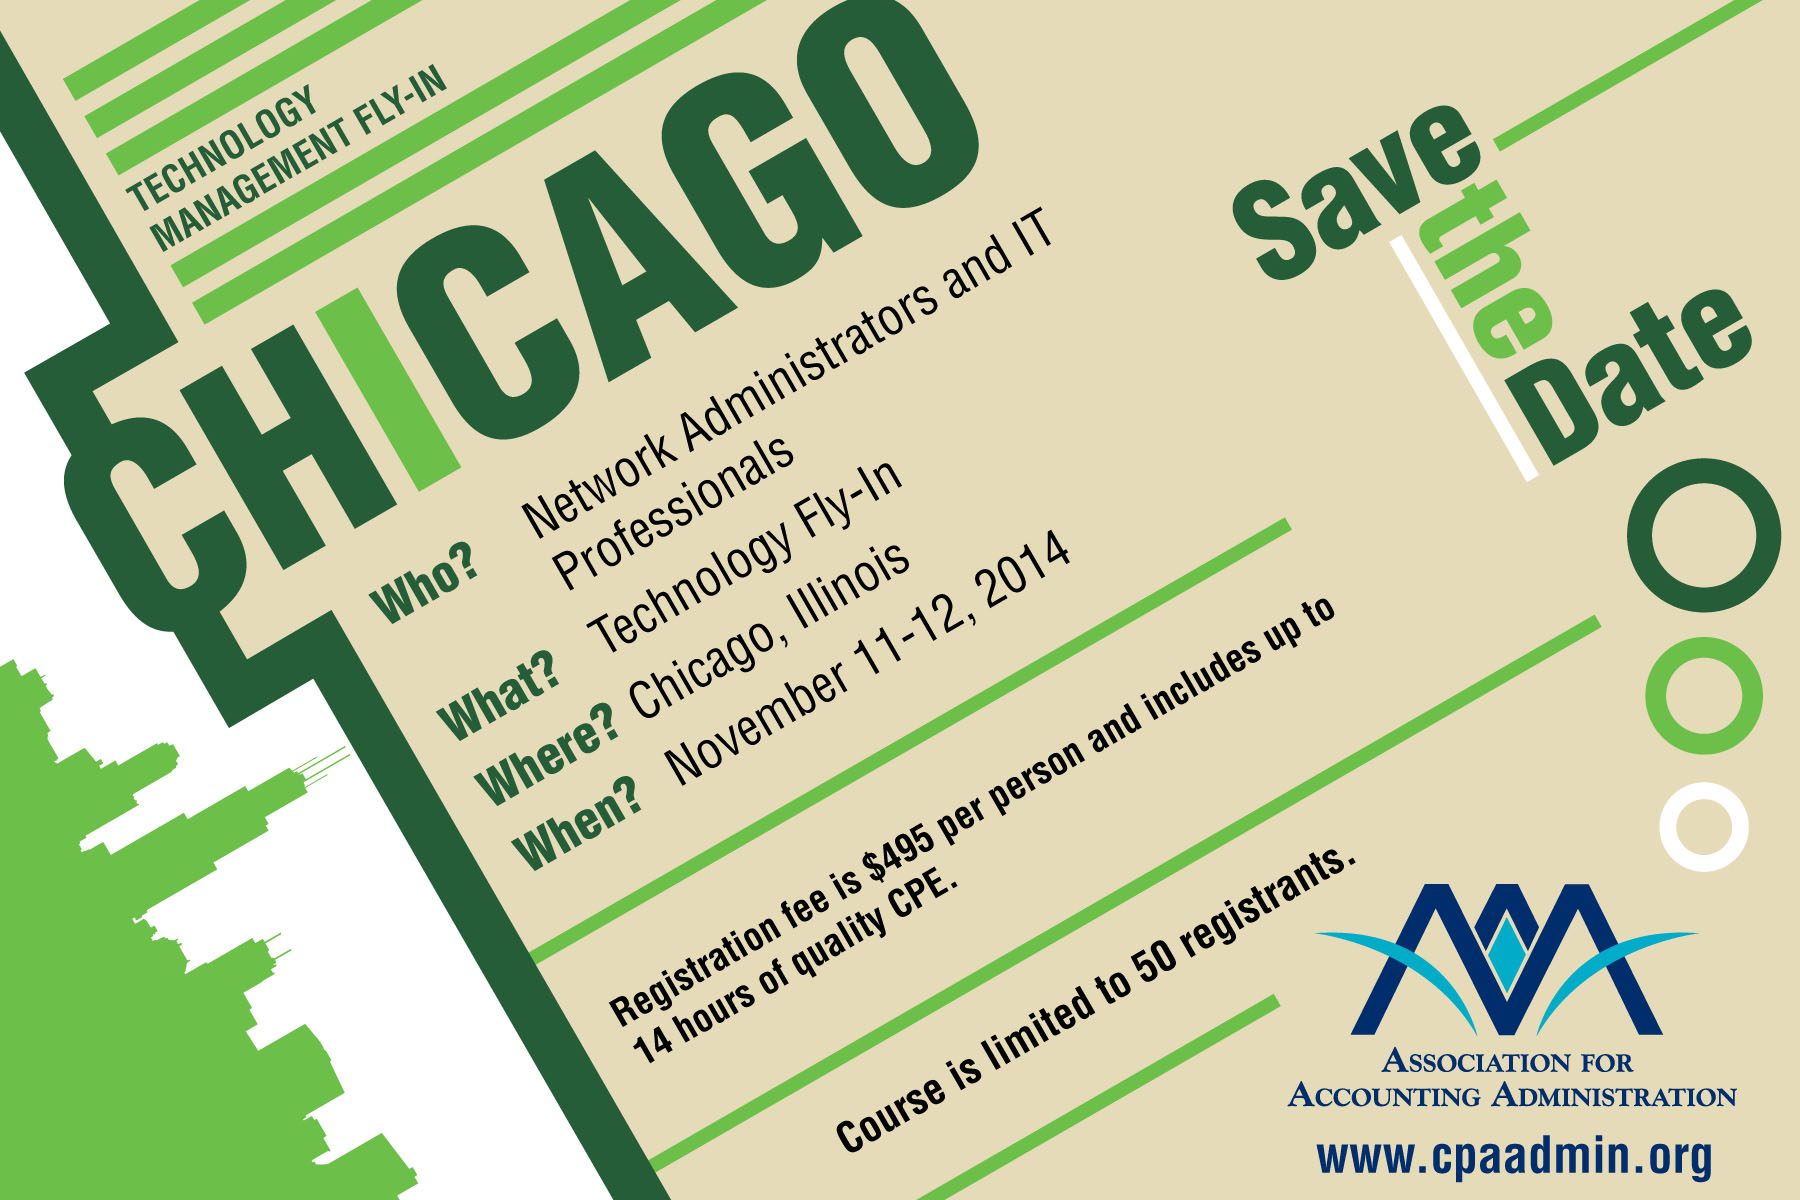 AAA 2014 Technology Fly-In Takes Place November 11-12, 2014